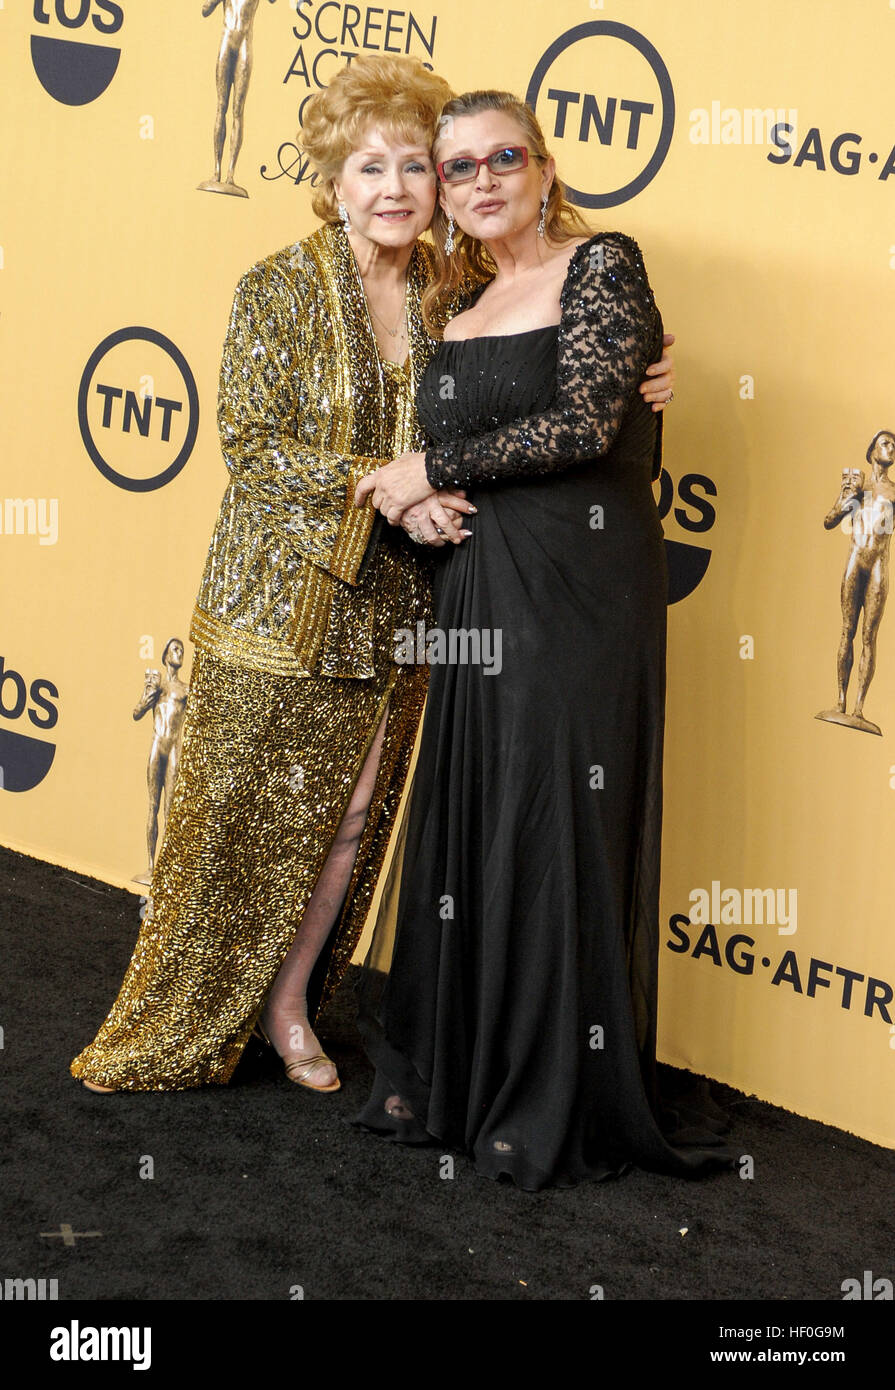 Debbie Reynolds & daughter Carrie Fisher 21.Annual Screen Actors Guild Awards 2015  25/01/2015 Los Angeles | - Stock Image